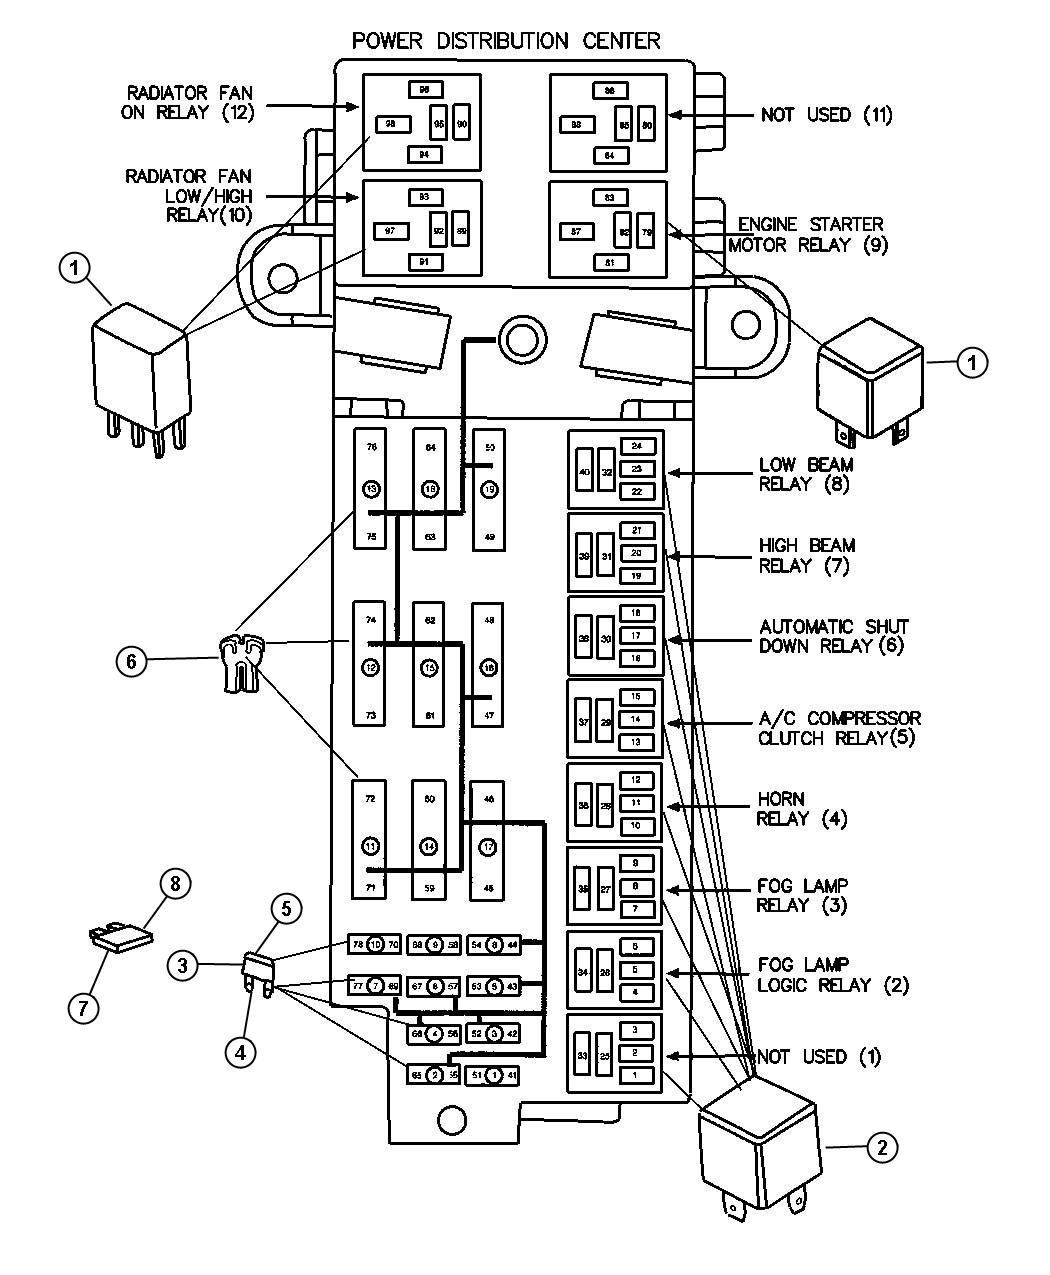 ShowAssembly moreover 1997 Grand Cherokee Fuse Box Diagram together with 99 Jeep Wrangler Fuse Box Diagram additionally 6ghnq Chrysler Pt Cruser 2001 Chrysler Pt Cruser 2 4l Automatic as well Ford Explorer Mk2 Fuse Boc Diagram Usa Version. on electrical power distribution center relays fuses